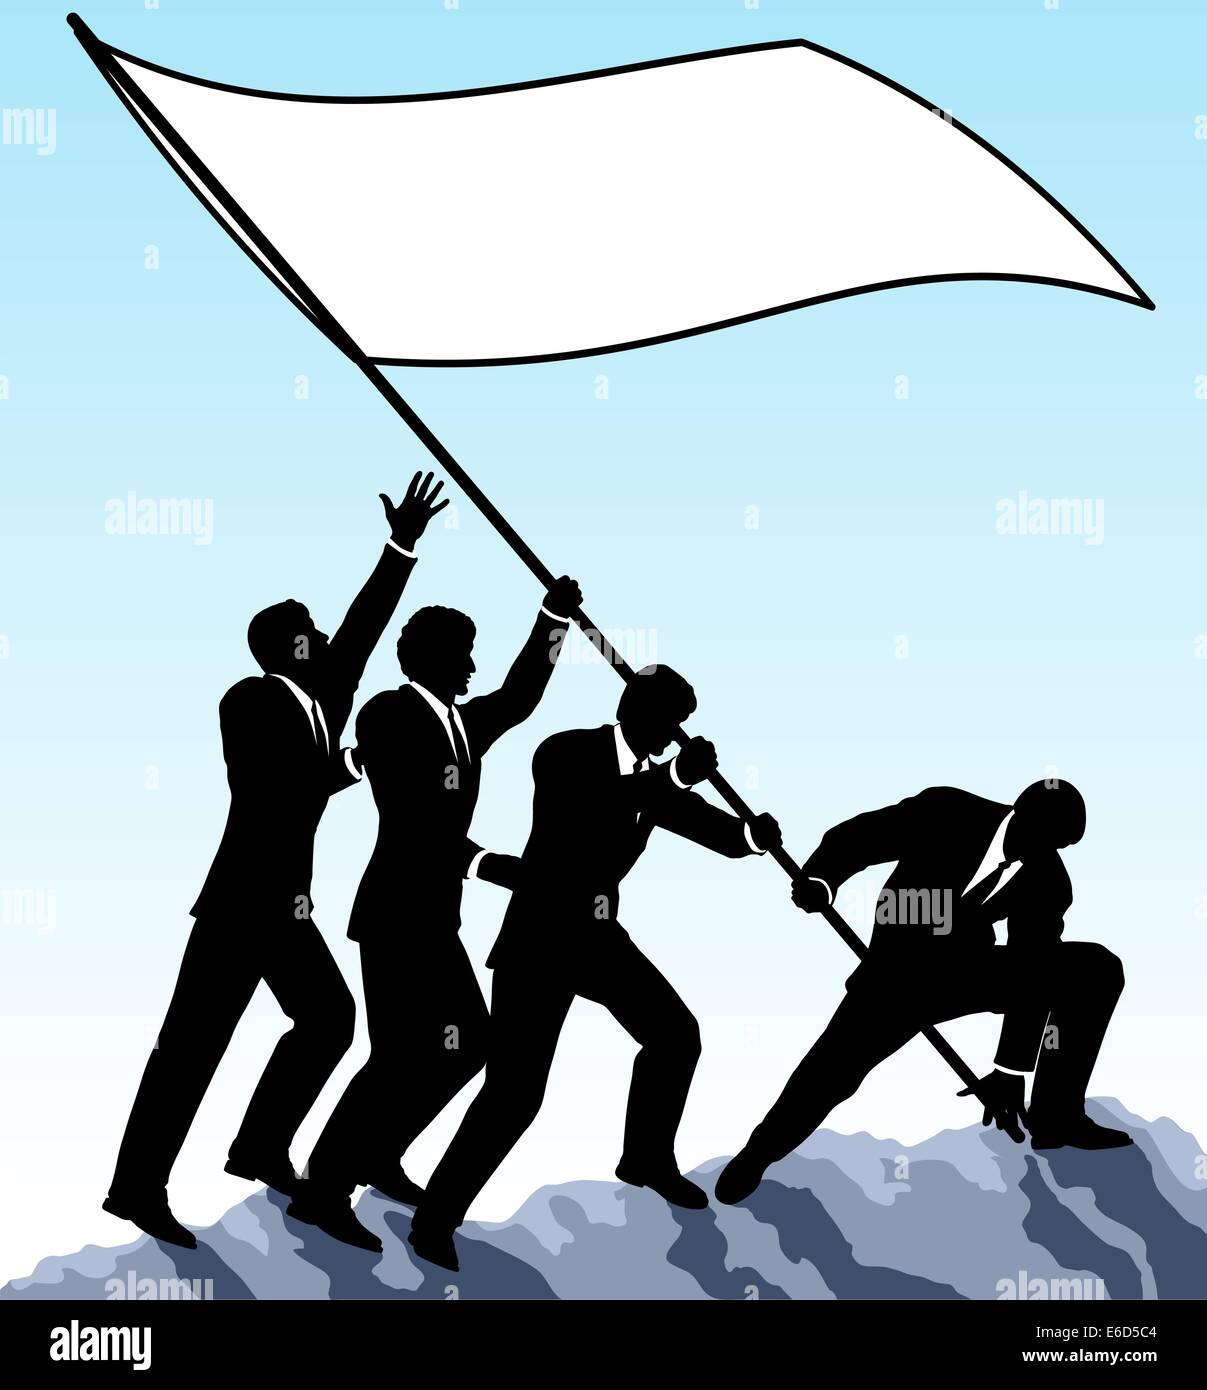 Editable vector illustration of businessmen raising a flag with all elements as separate objects - Stock Vector